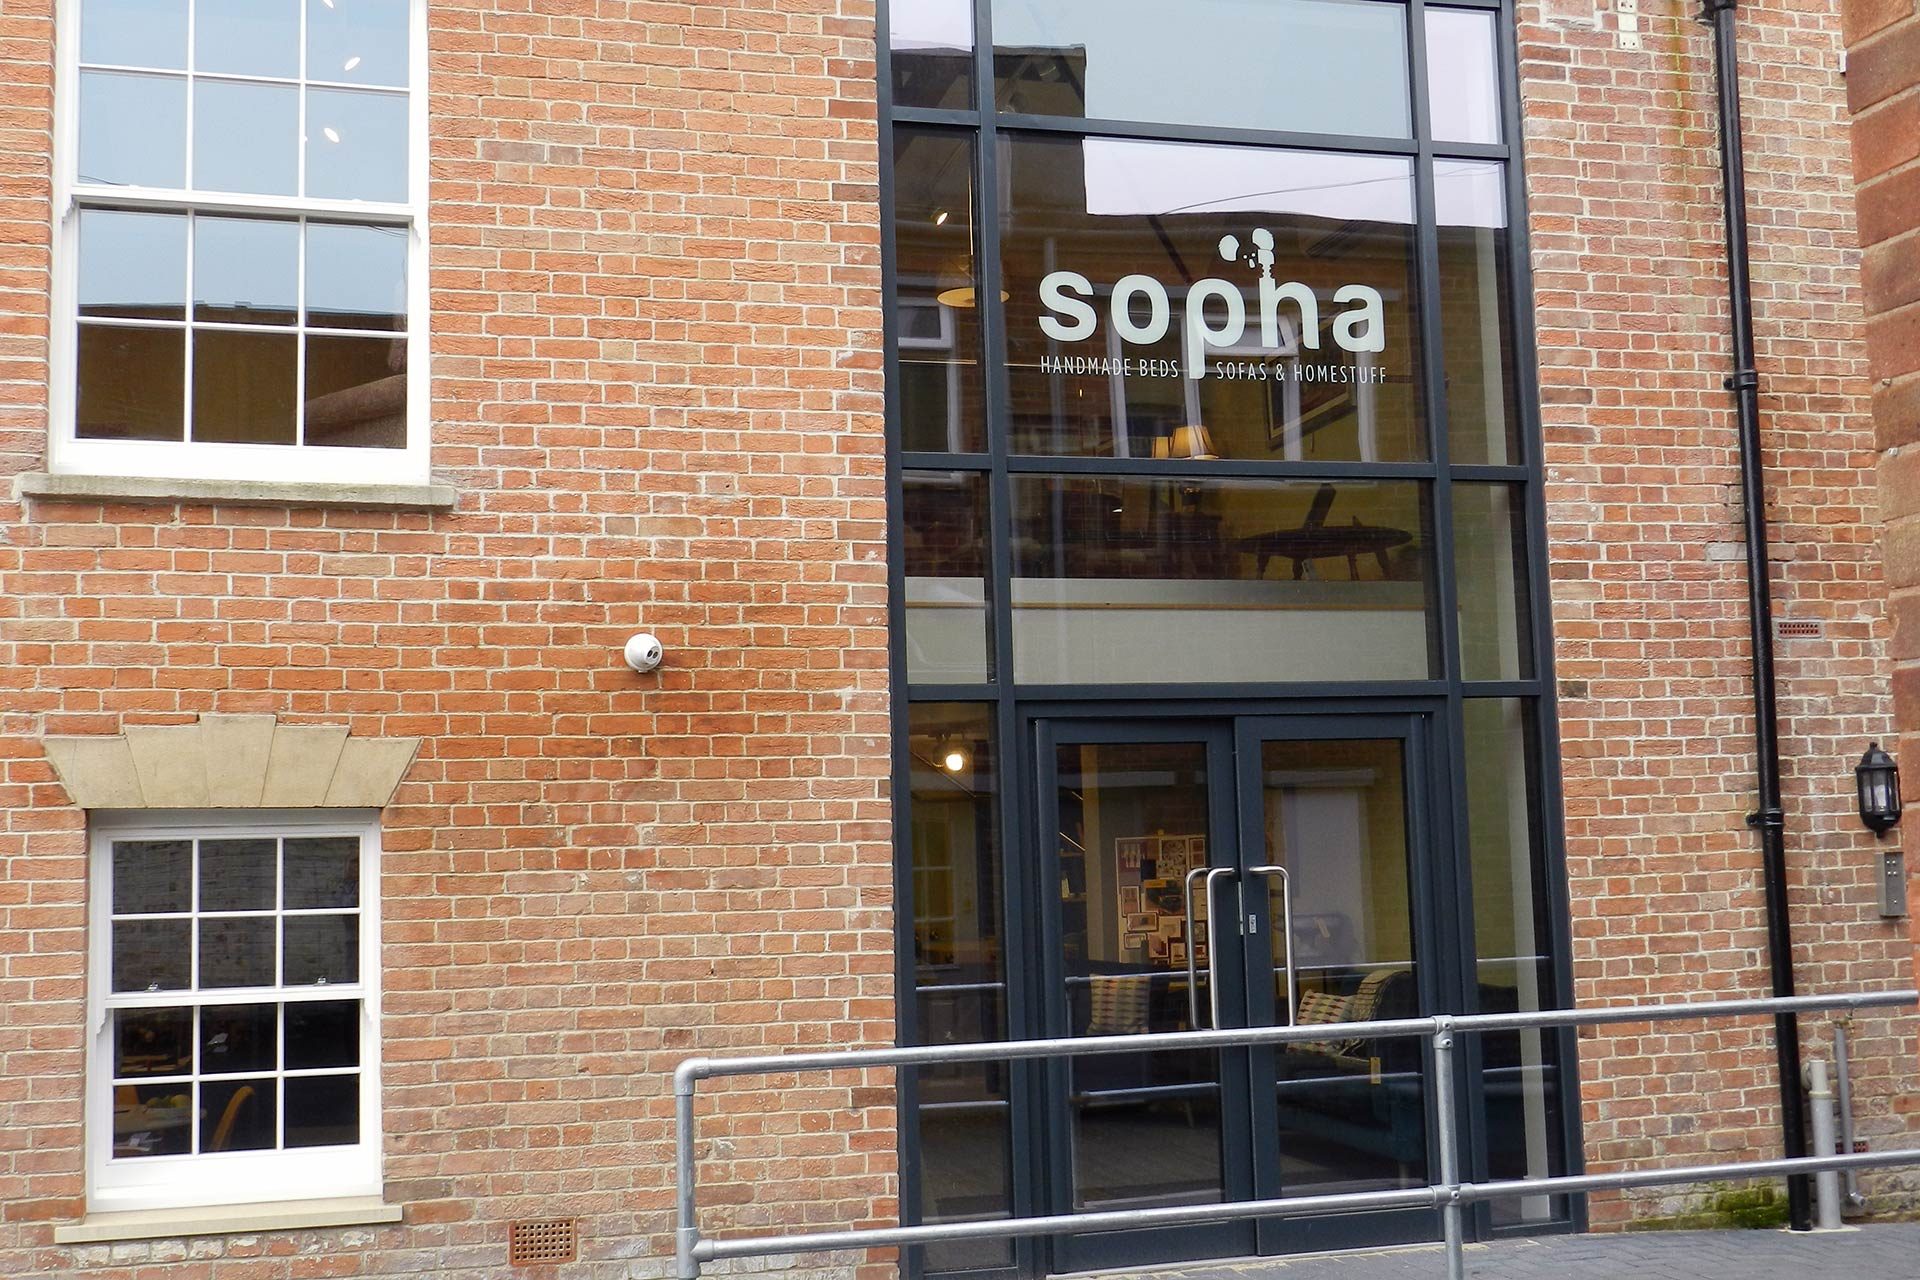 Sopha-furniture-shop-front-signage-Somerset The Importance of Branding & Graphic Design in a Business